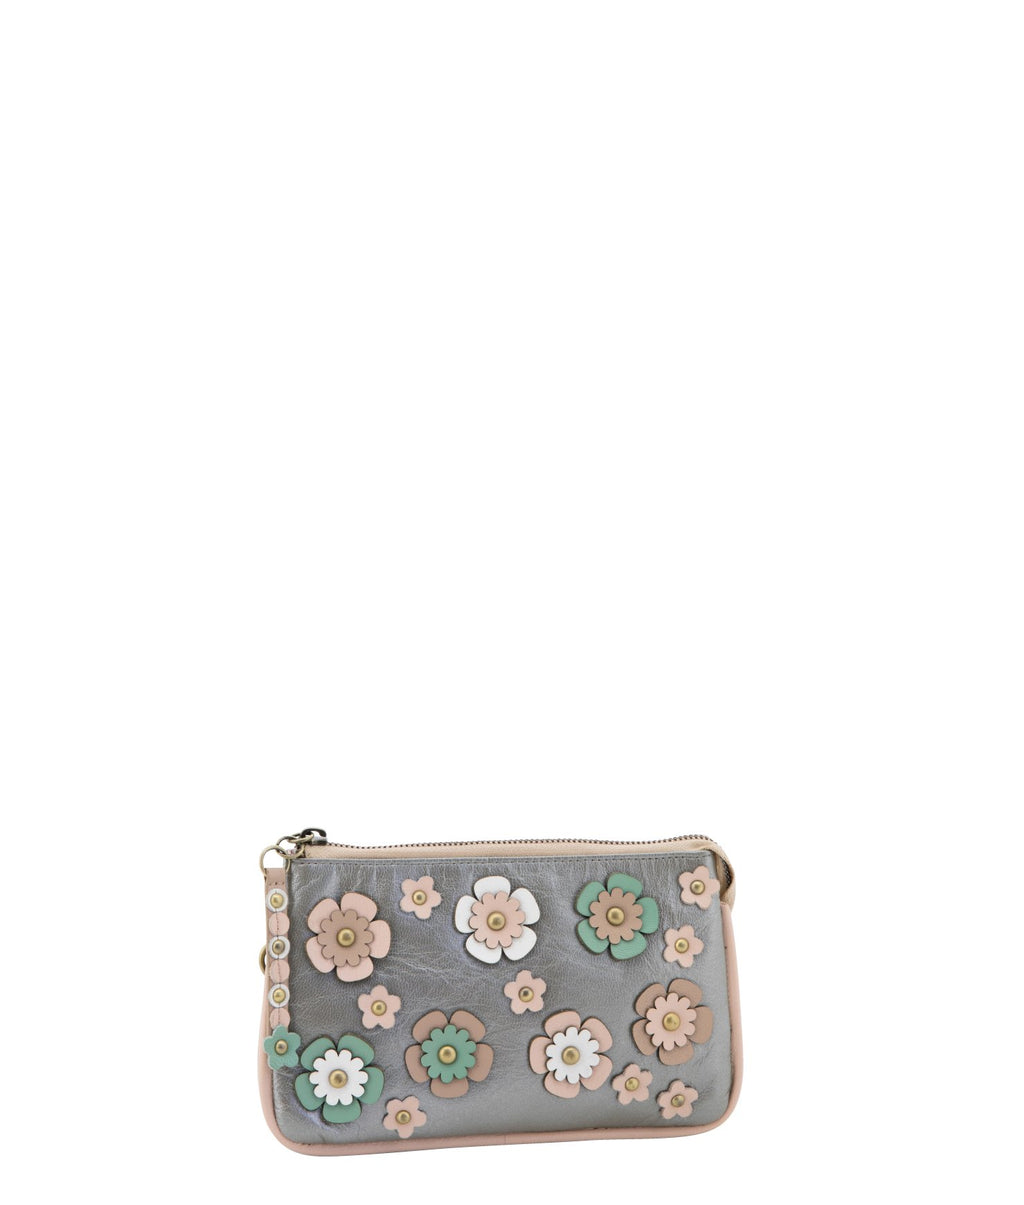 POPPY Clutch - Ballet Slipper